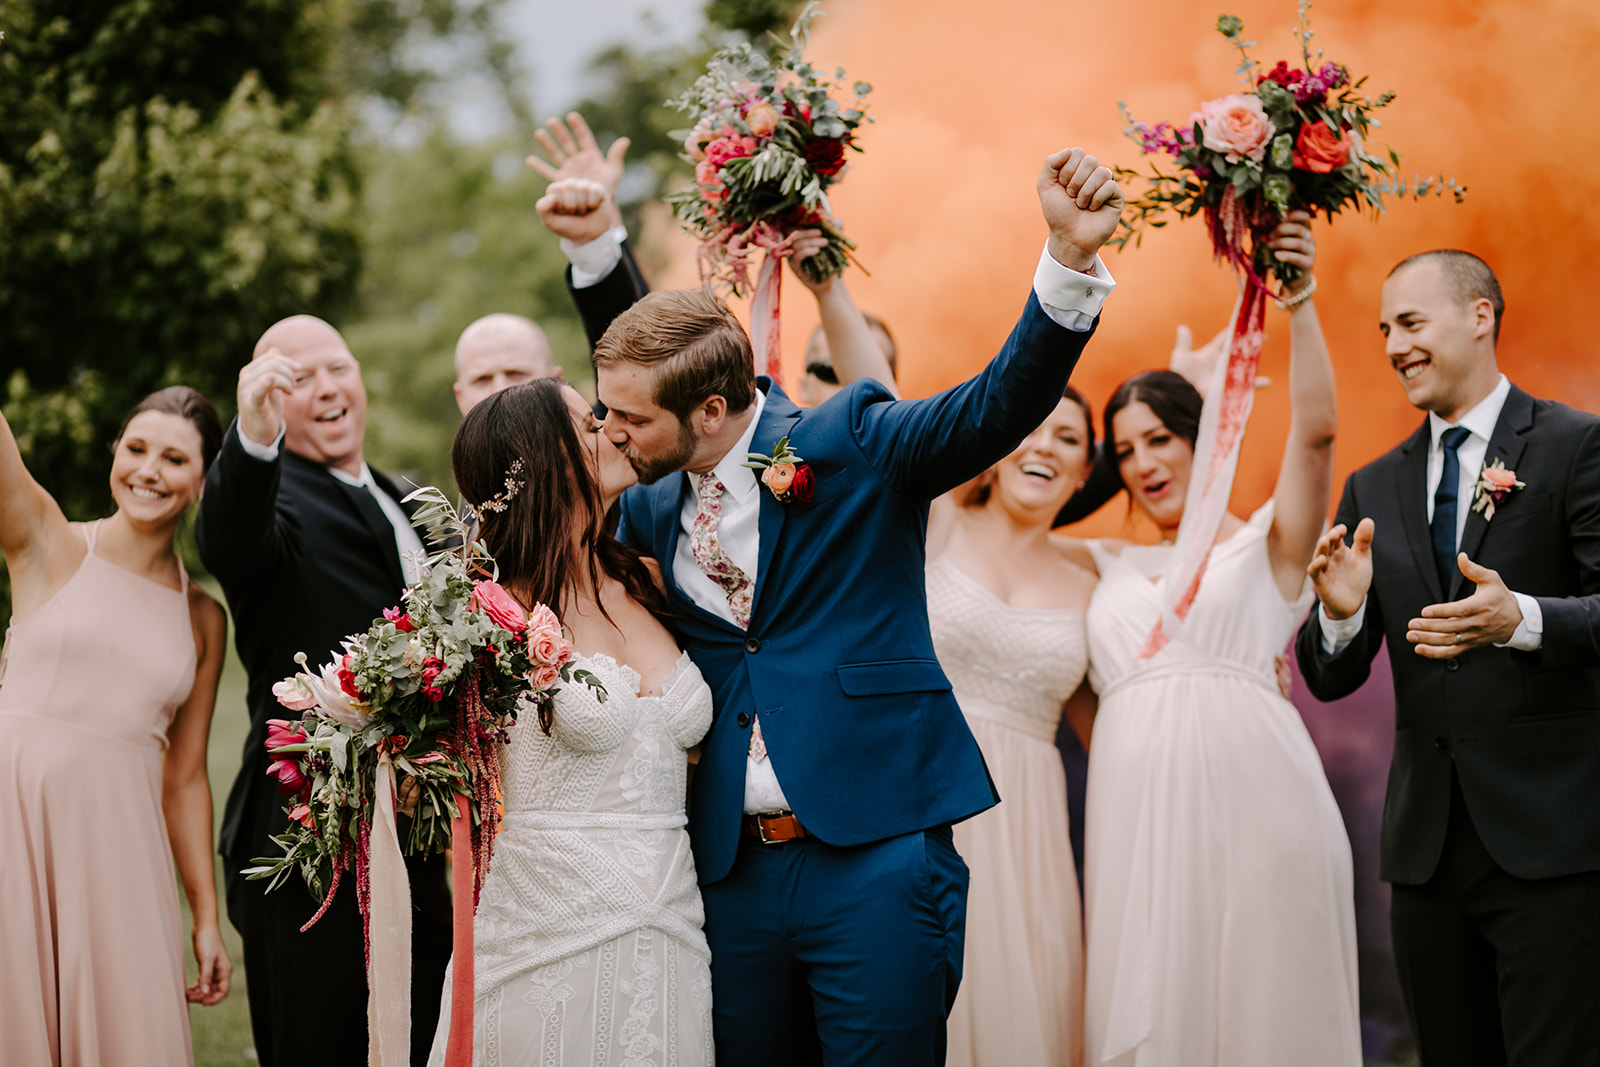 Outdoor wedding ceremony at Long Hollow Gardens